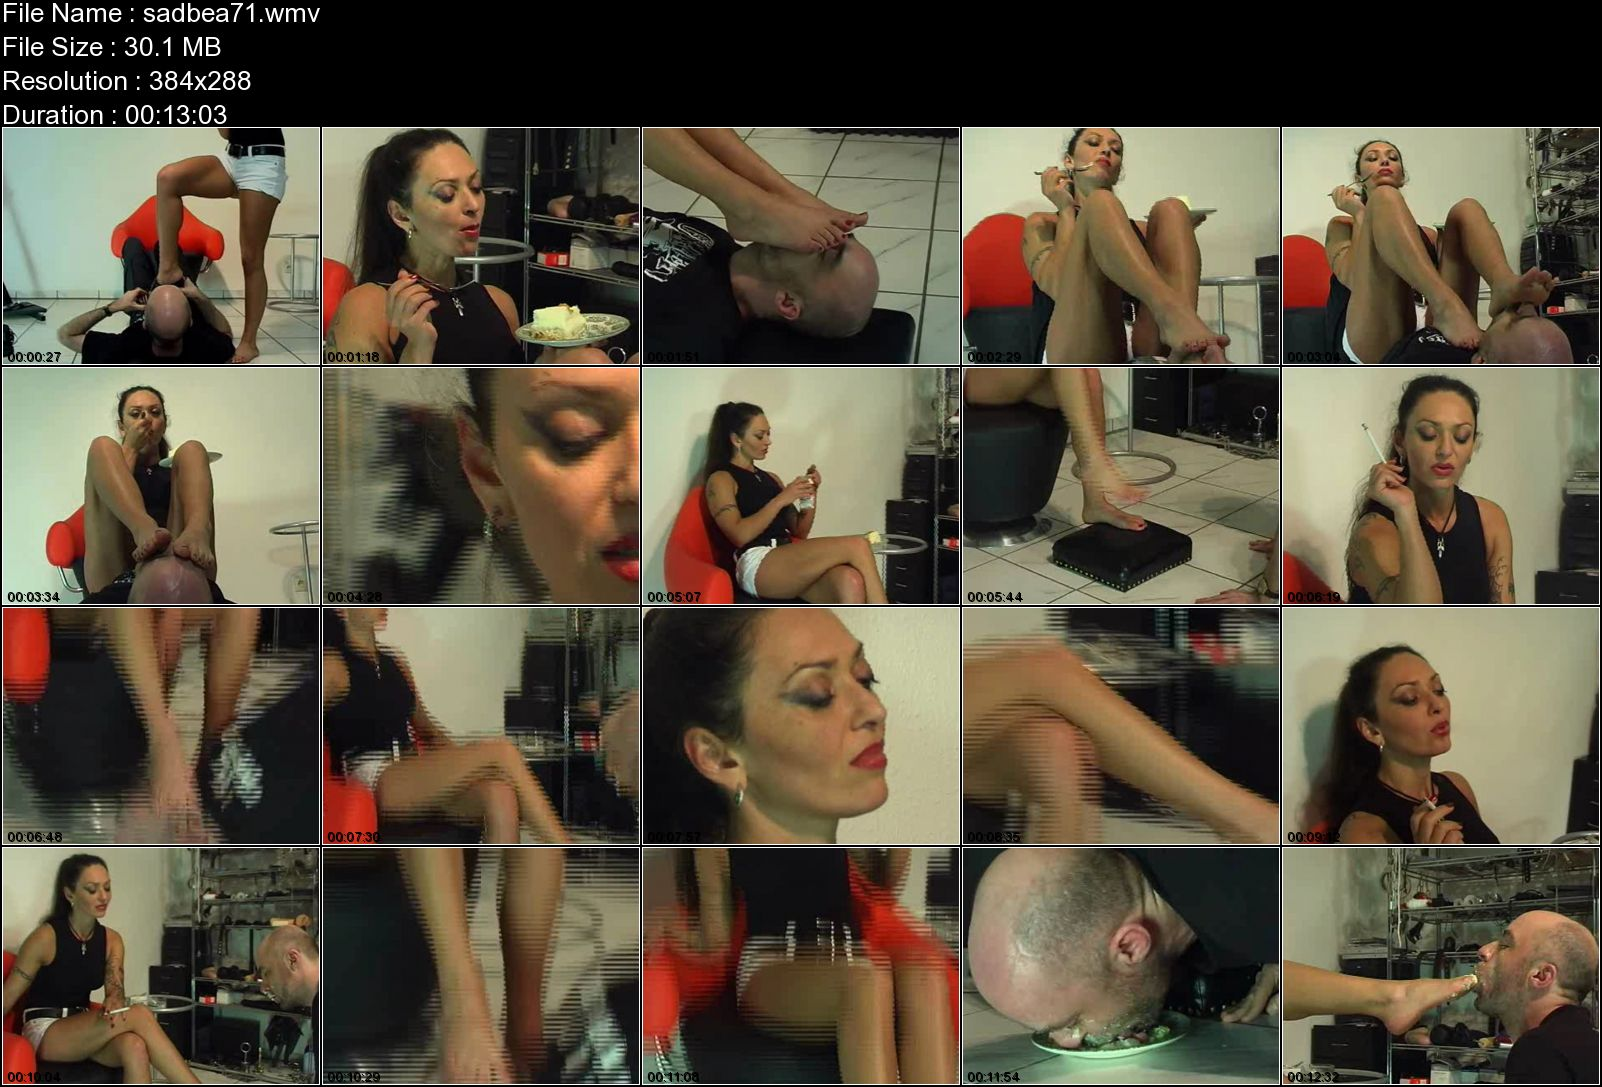 EMPRESS CRUEL In Scene: FOOT-FETISH & KINKY FOOD-CRUSHING - SADOBEAUTIES - LQ/288p/WMV